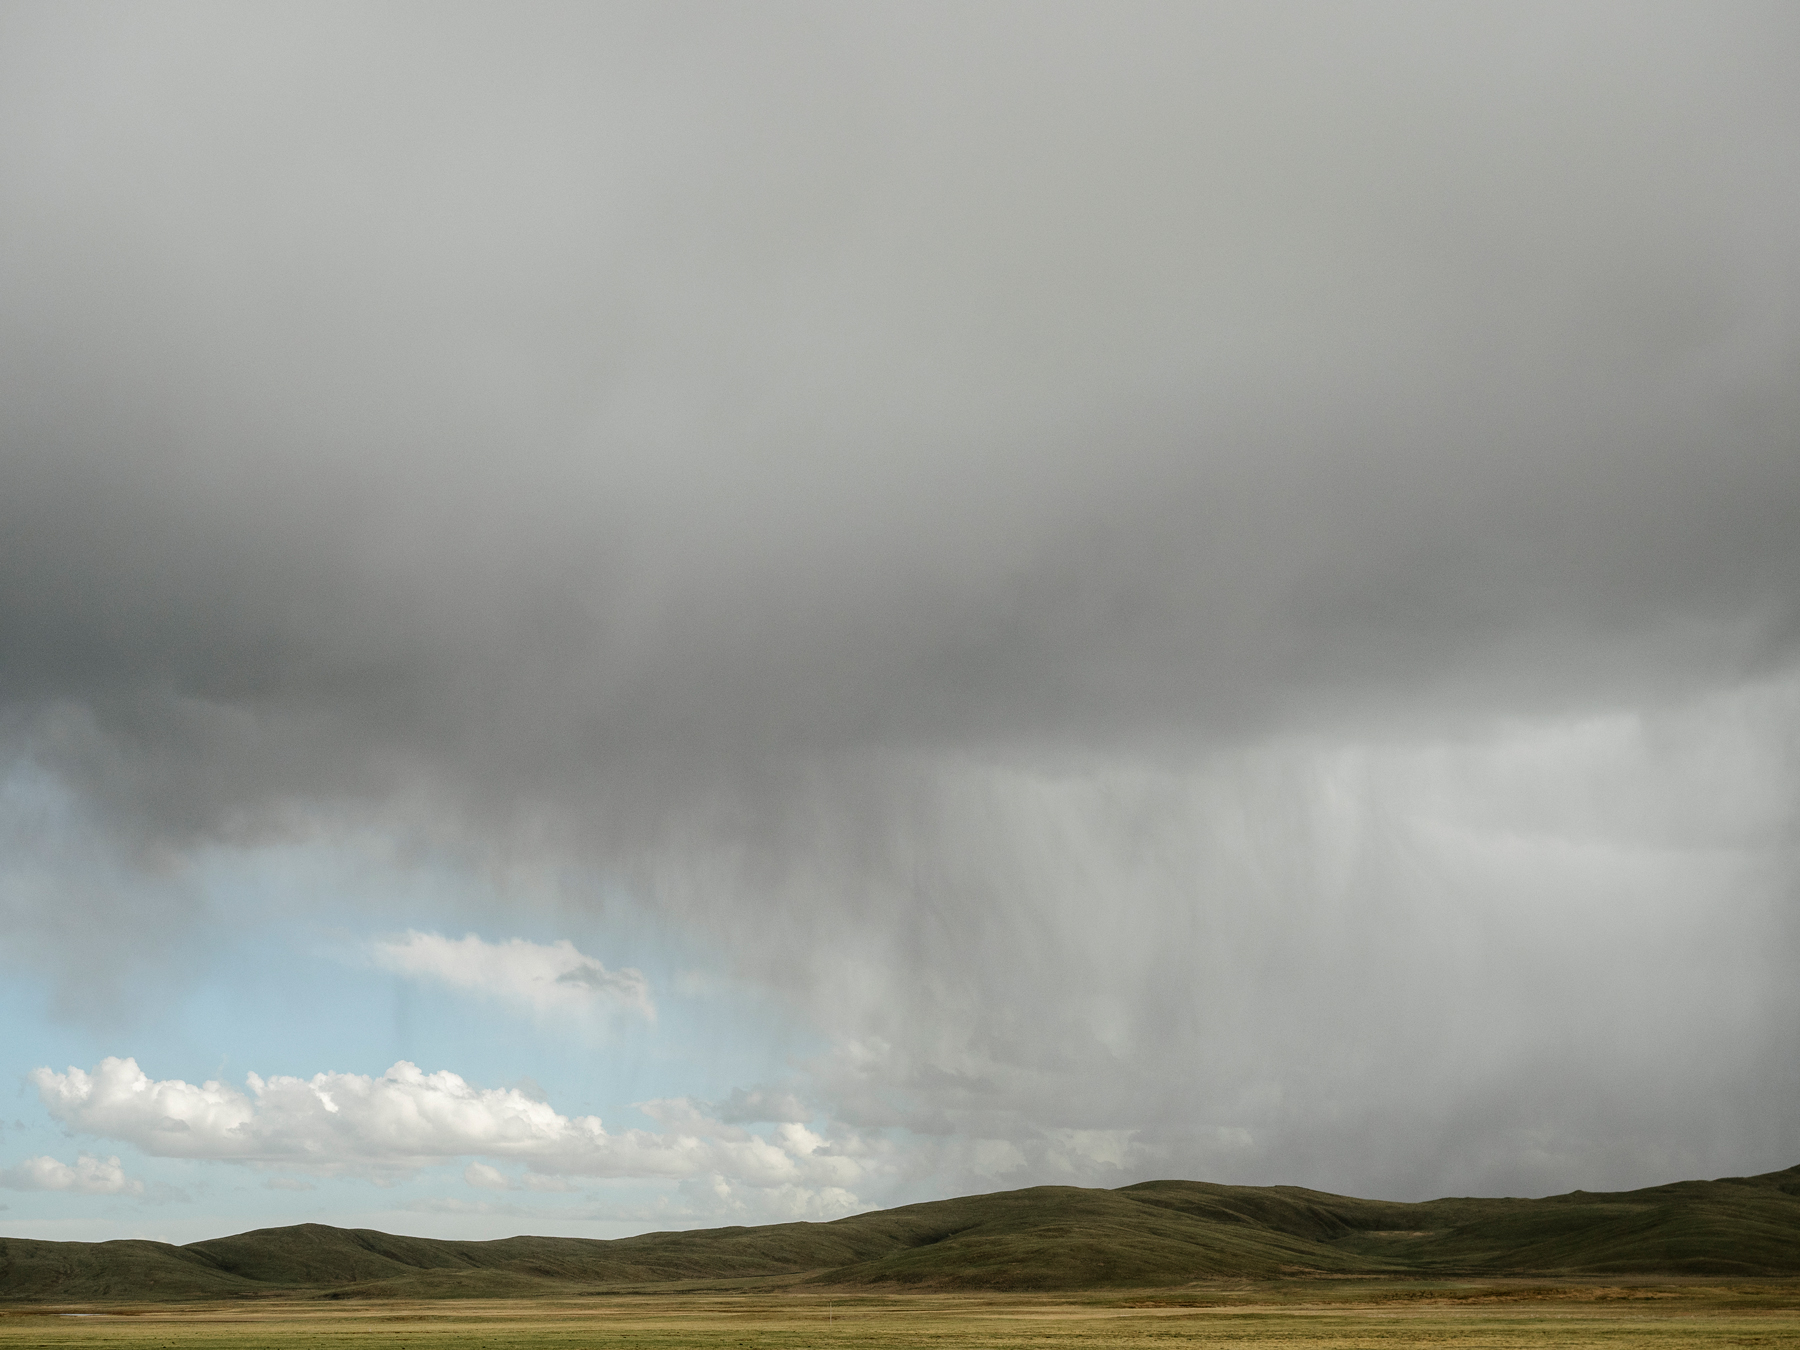 Rain clouds at an altitude above 13,000 feet, in Madoi county.